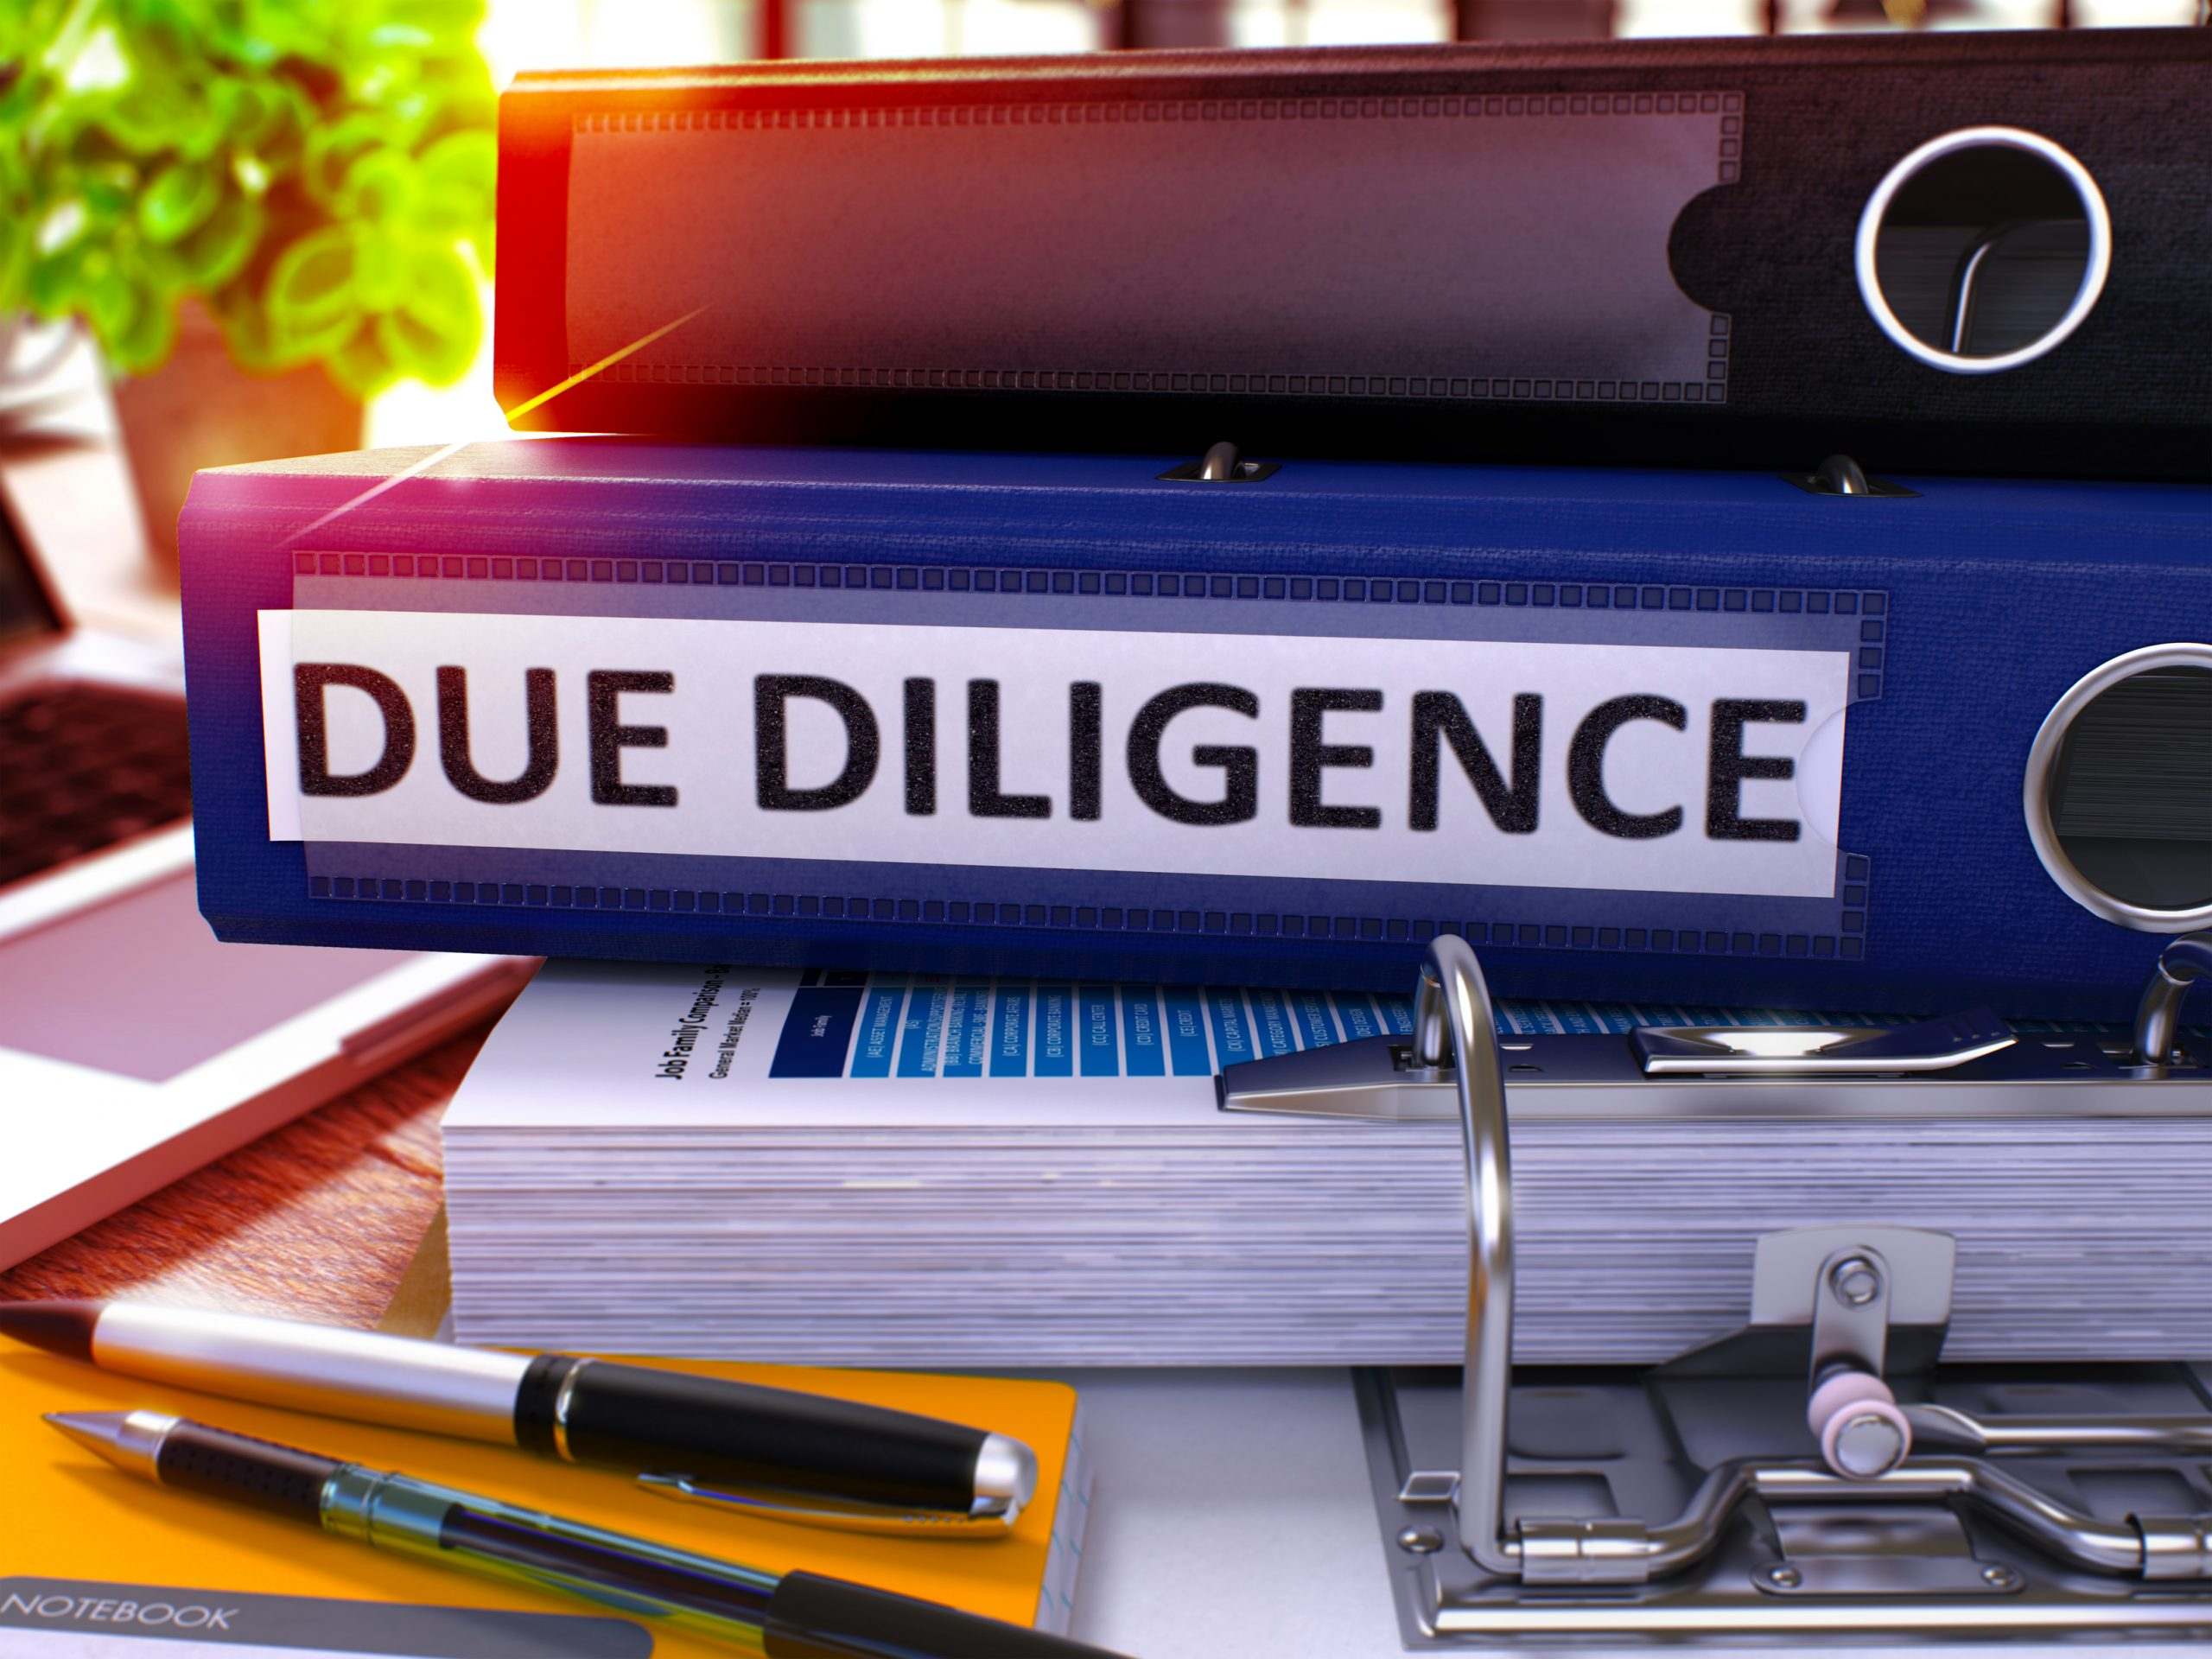 How good is your due diligence?